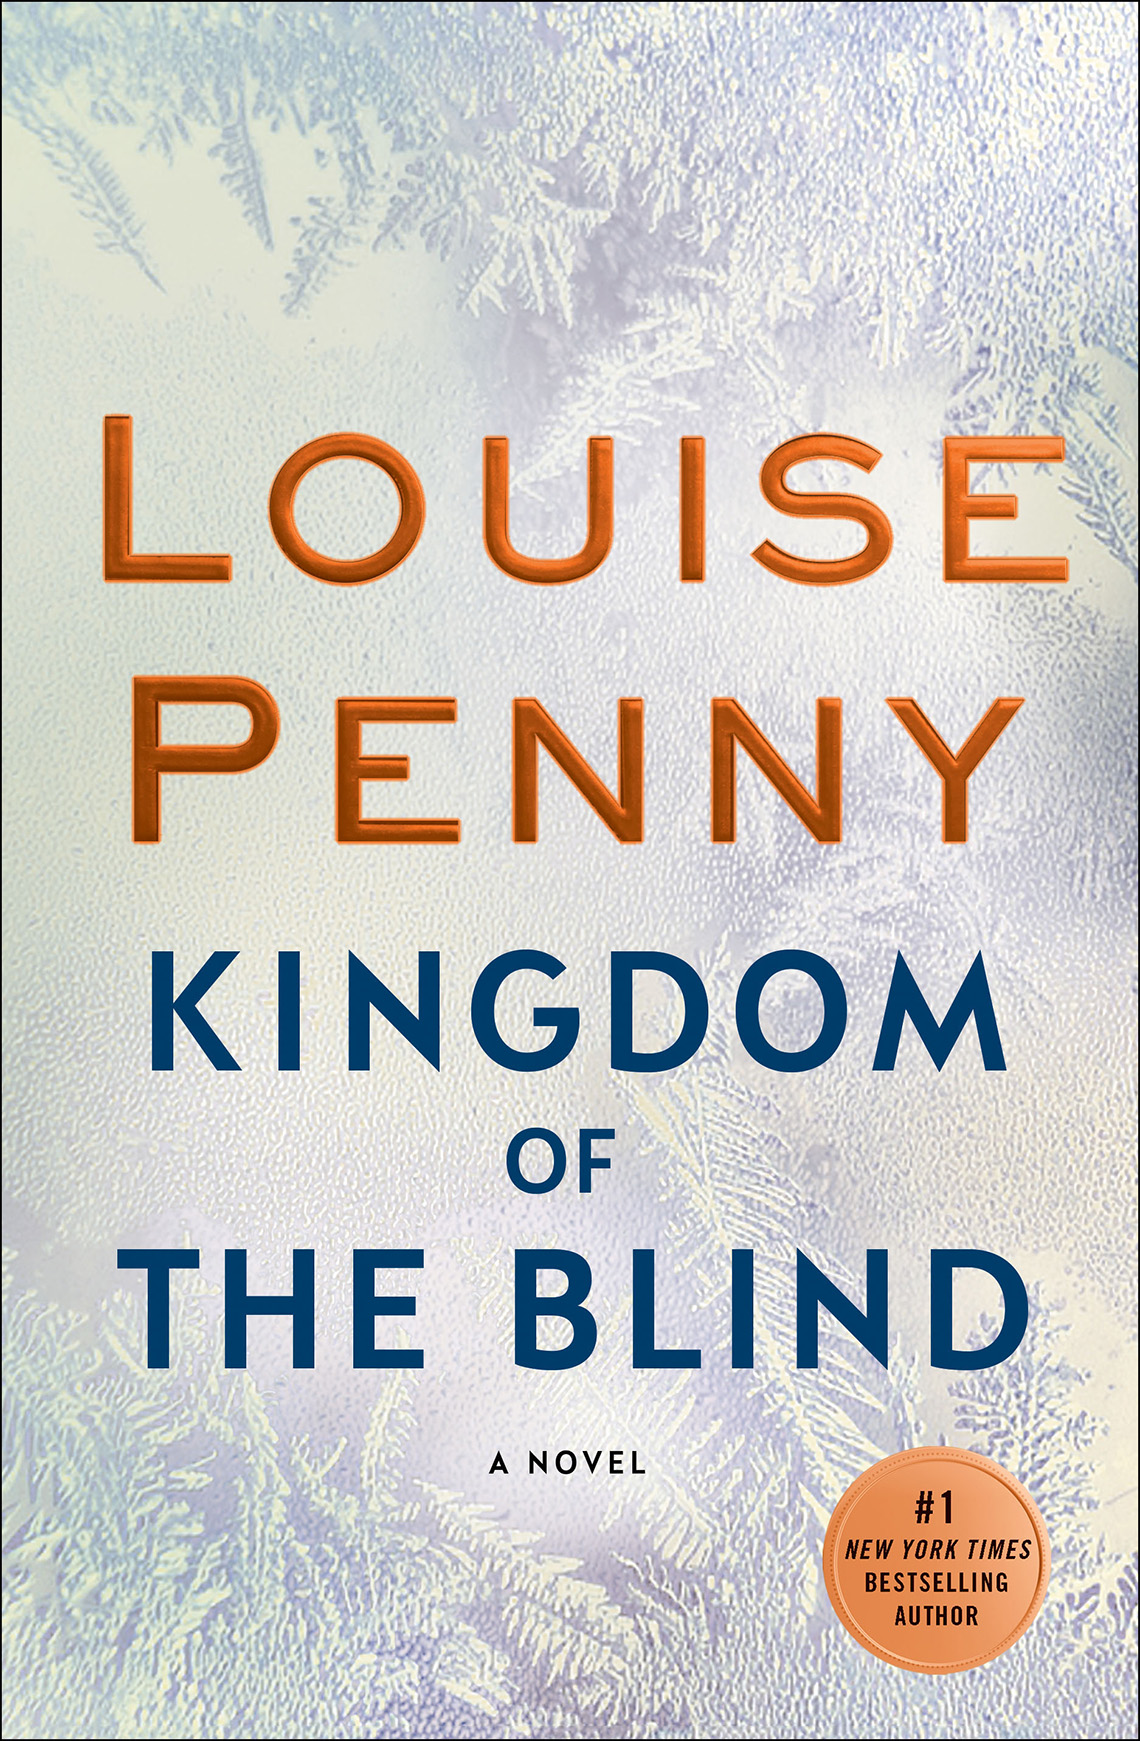 """Book cover reads """"Louise Penny, Kingdom of the Blind"""""""